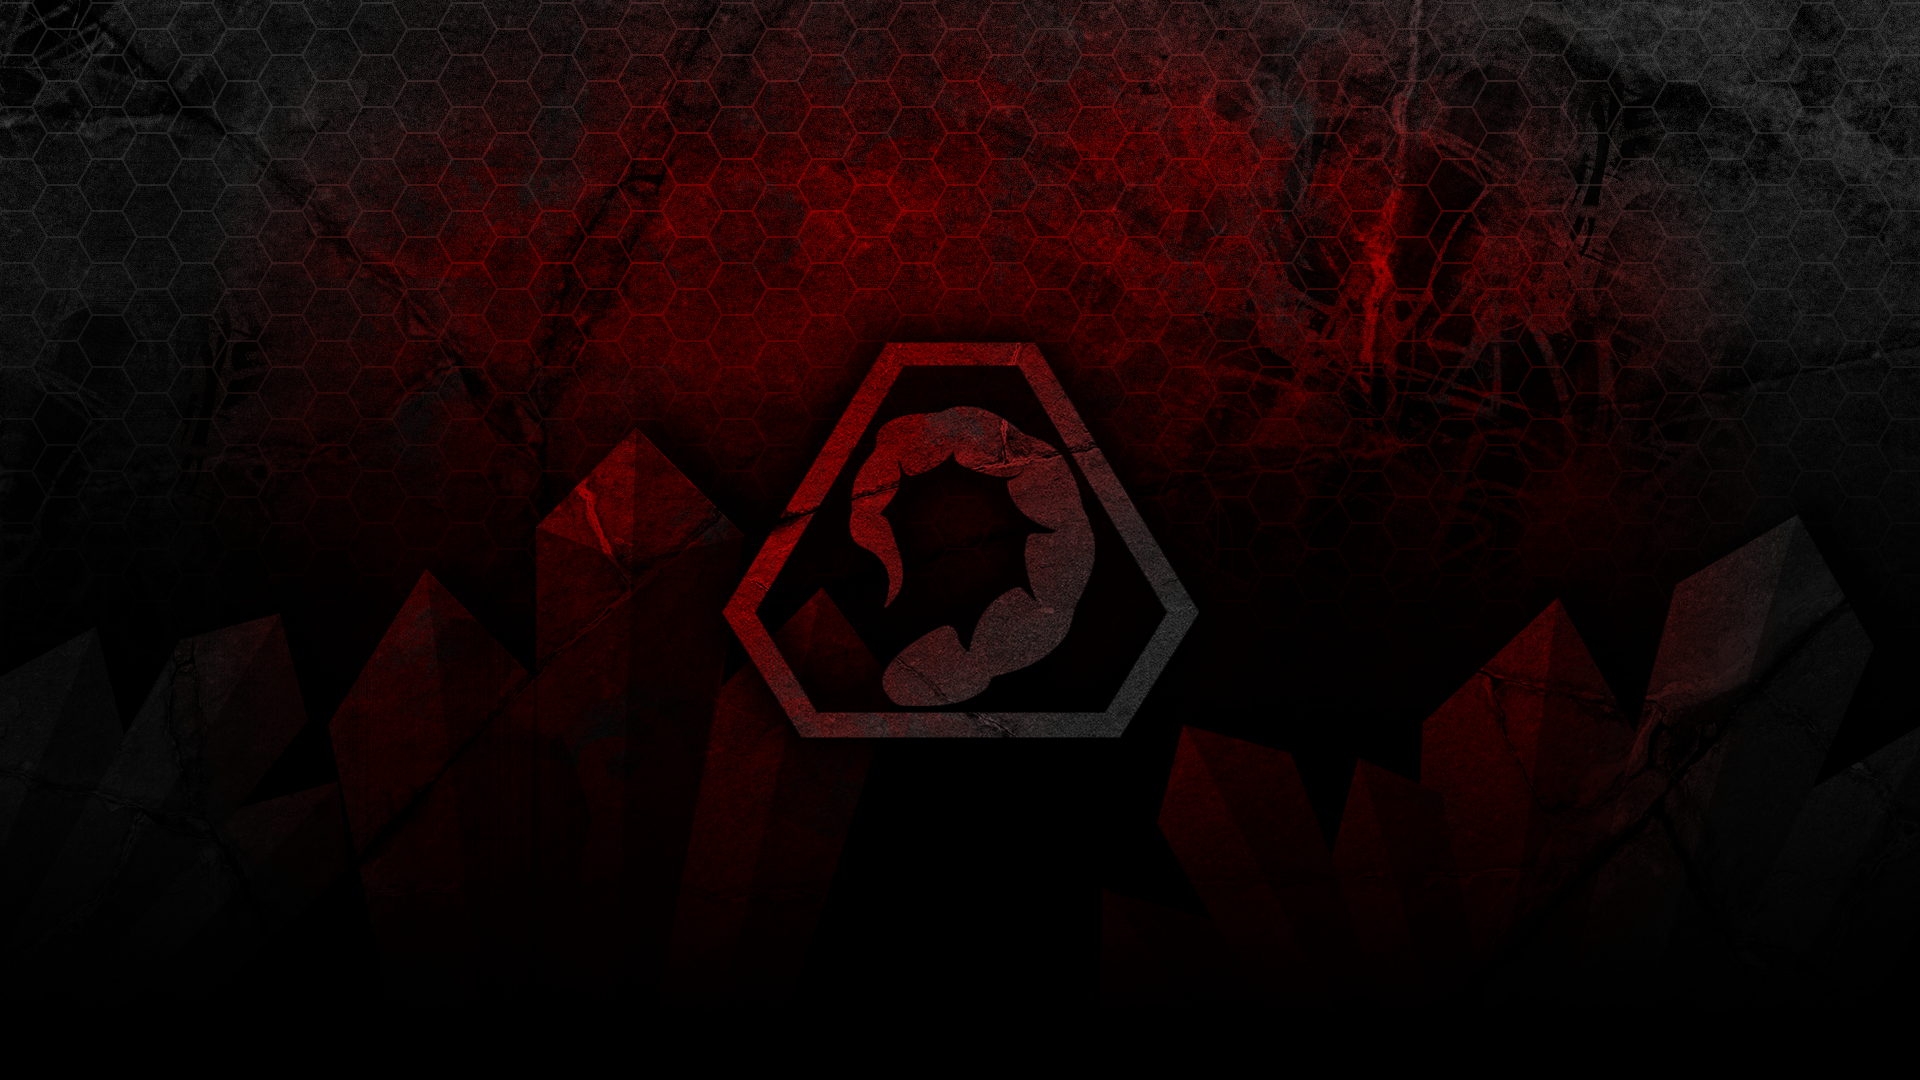 Command And Conquer Wallpaper: Another Command And Conquer Desktop Background By XInflux